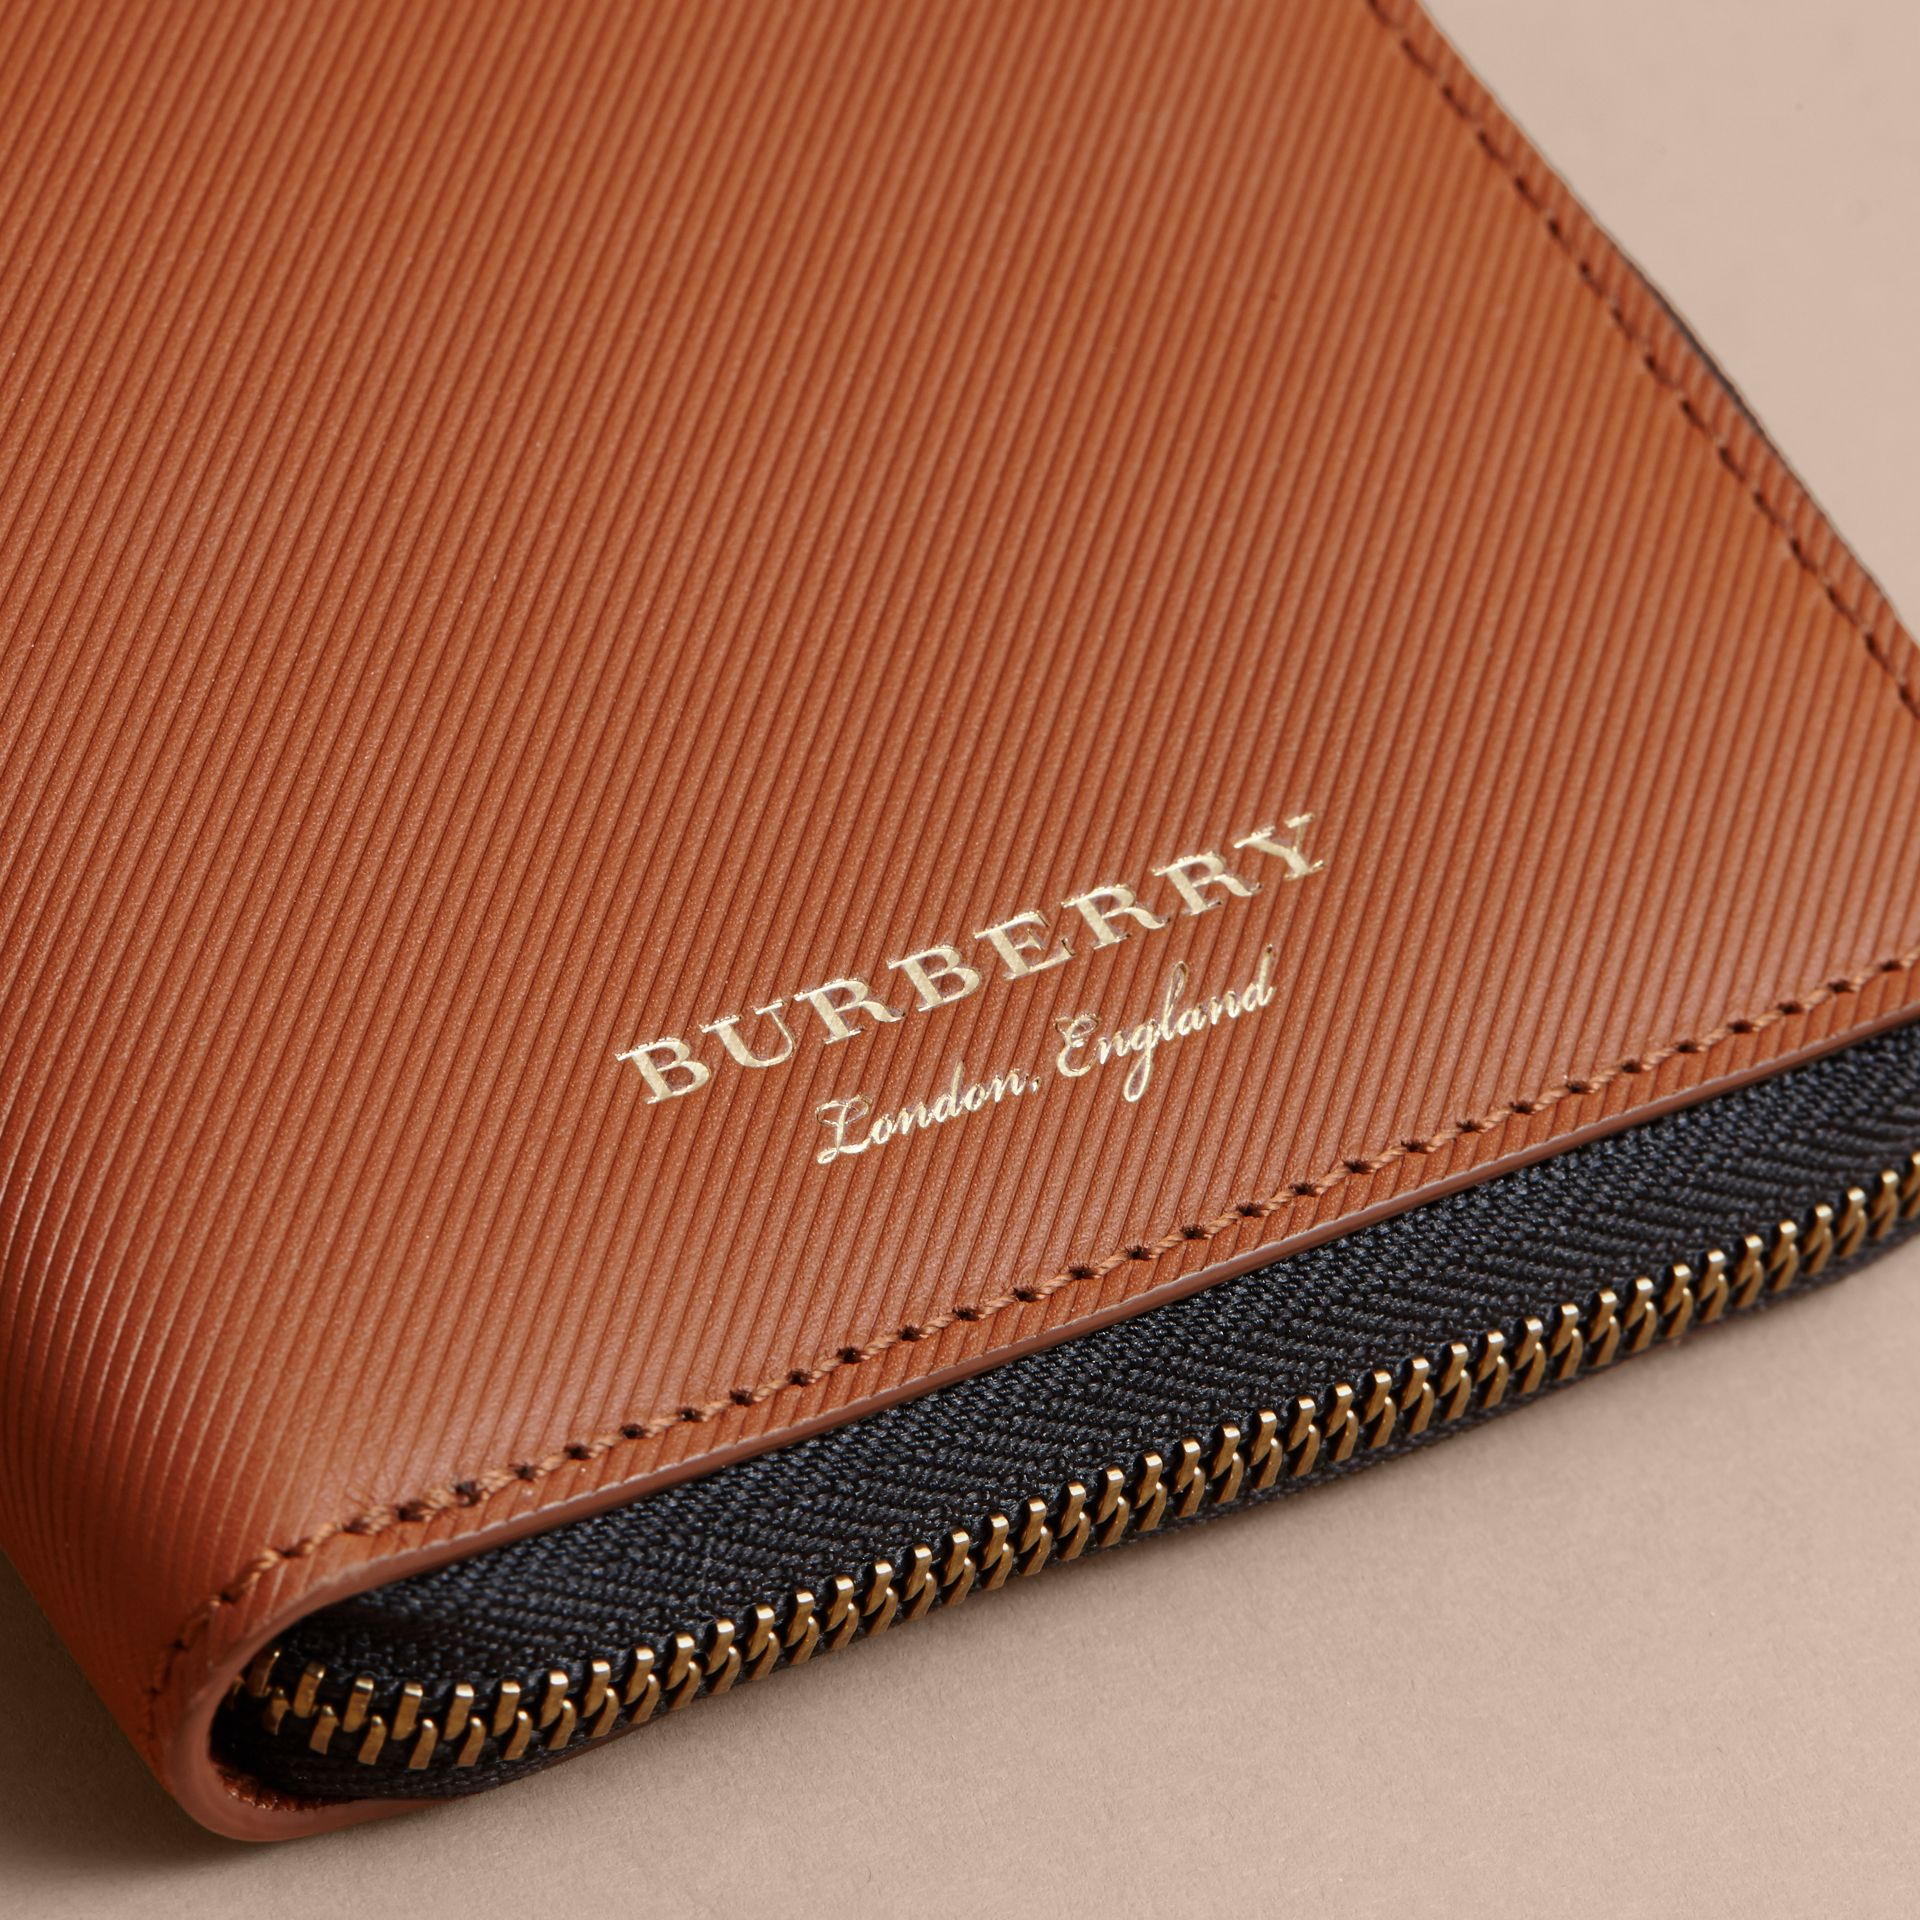 Trench Leather Ziparound Wallet in Tan - Men | Burberry Hong Kong - gallery image 2